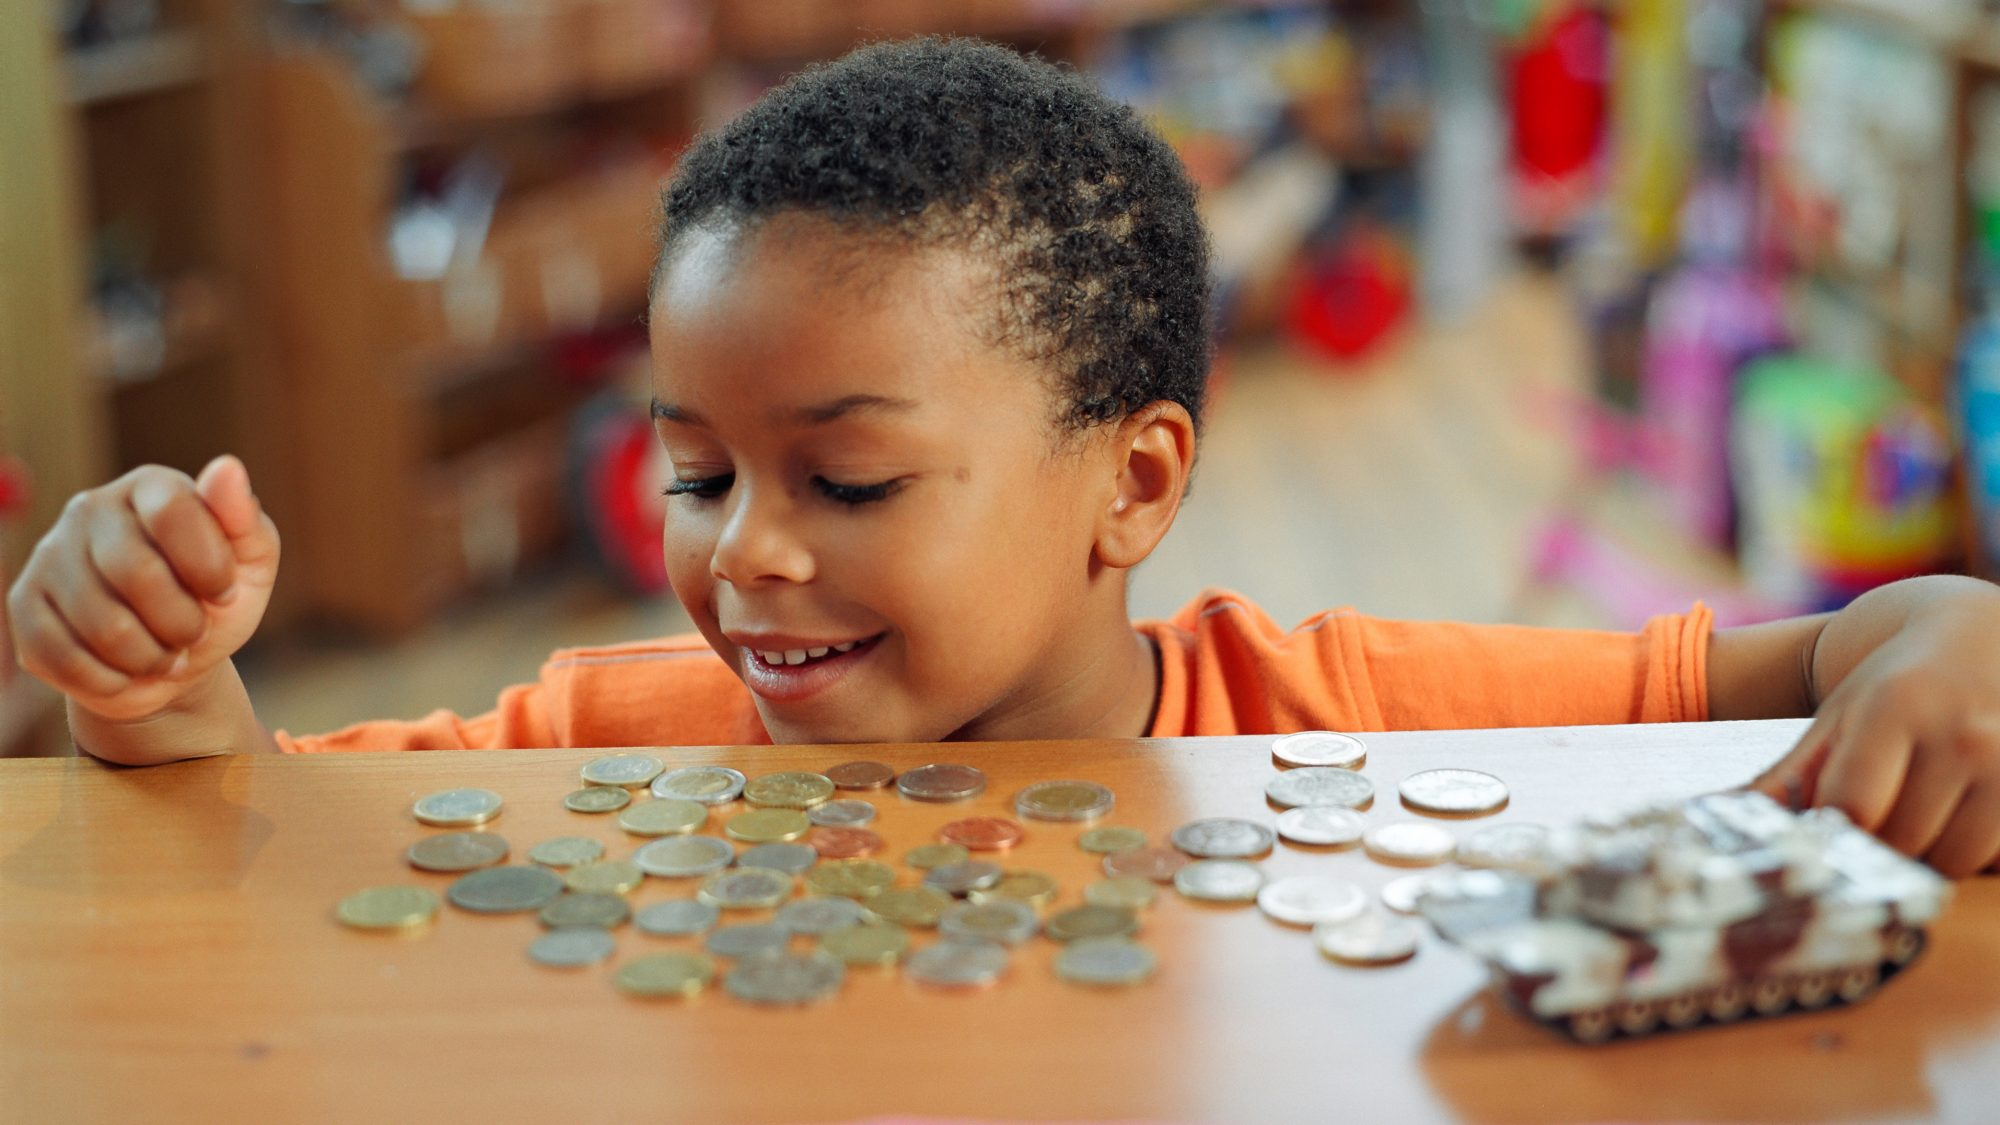 Boy (4-6) counting out change on counter in toy shop, smiling